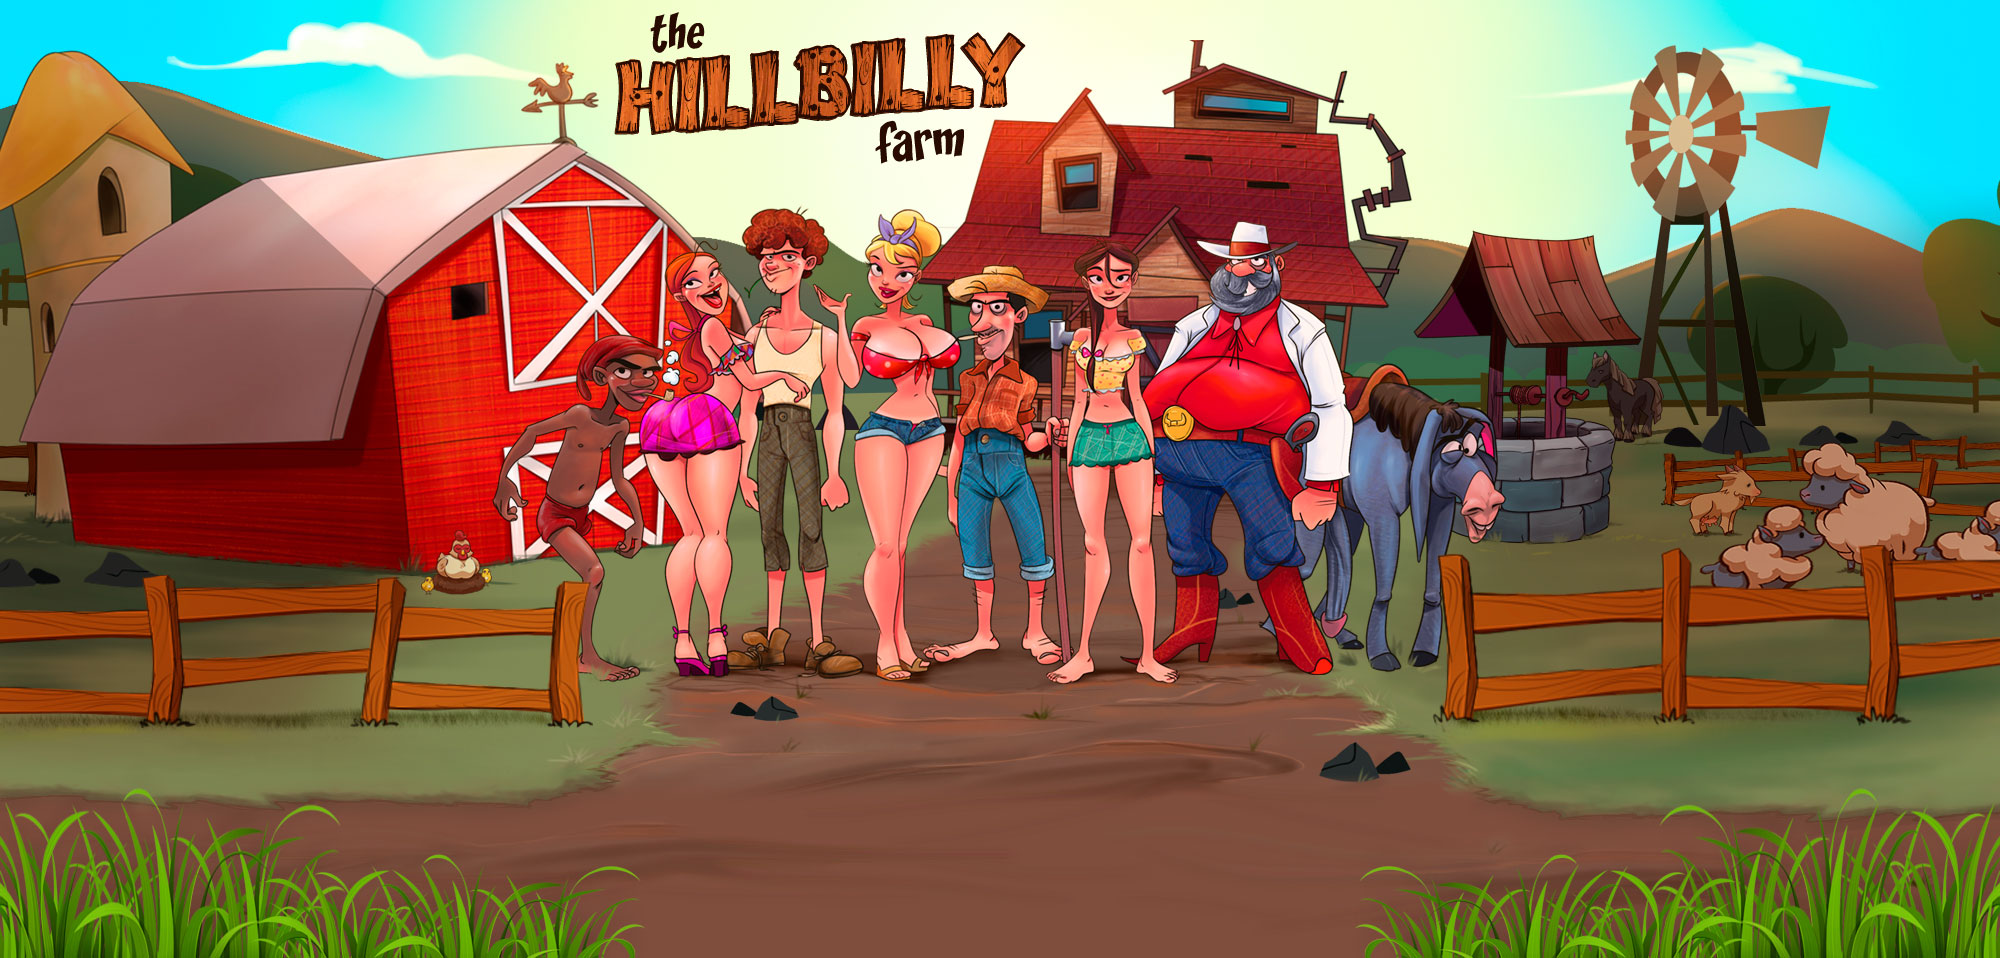 The Hillbilly Farm - header